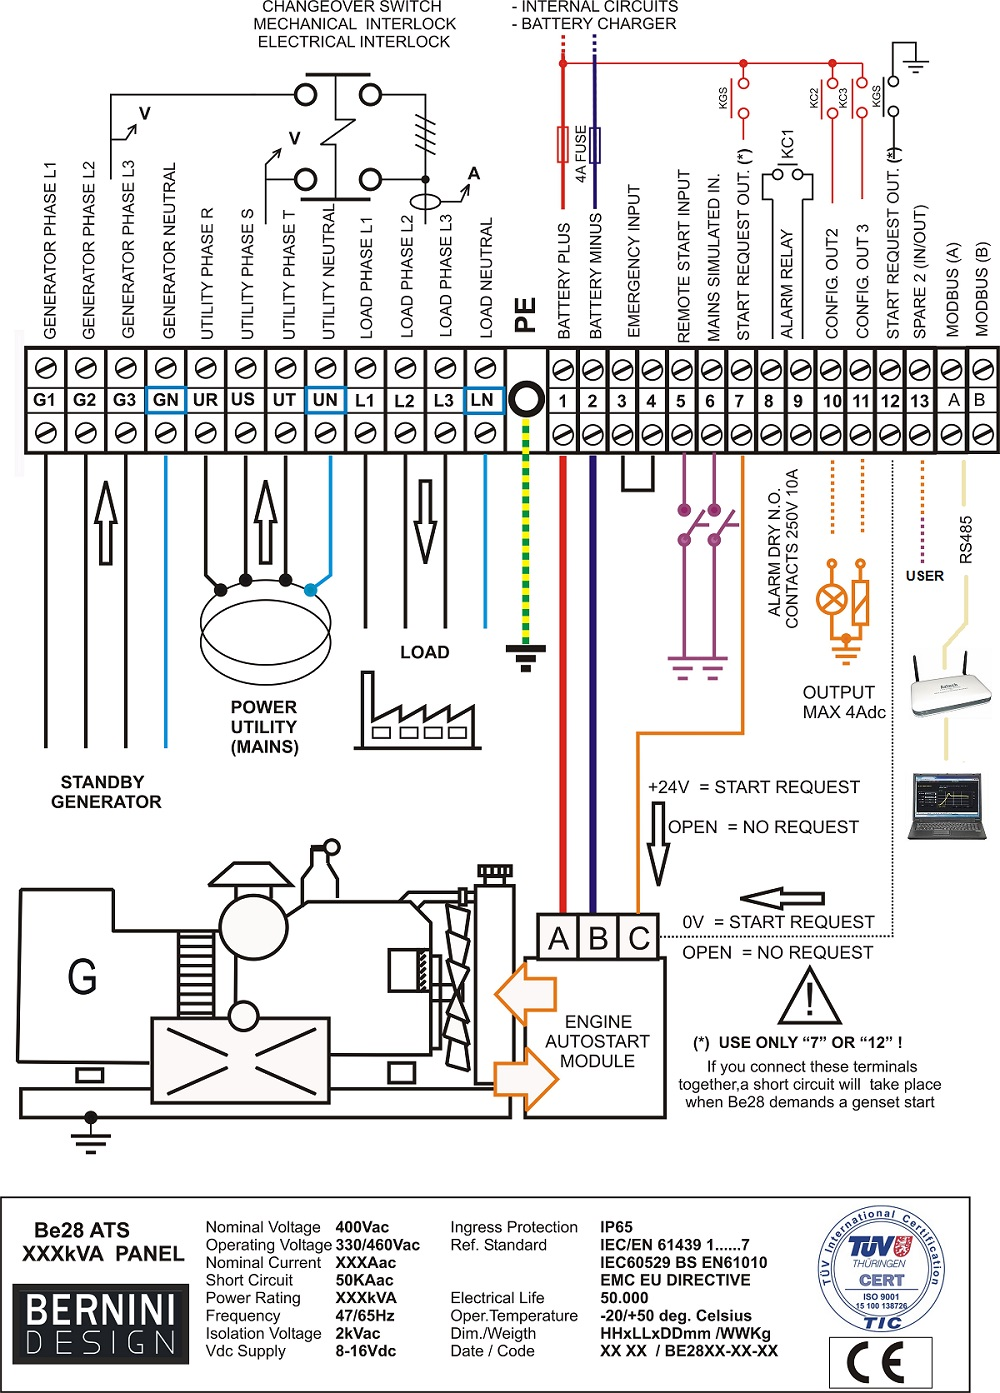 AUTOMATIC TRANSFER SWITCH TYPICAL WIRING 15kVA 130kVA automatic transfer switch wiring diagram genset controller generator automatic transfer switch wiring diagram at crackthecode.co